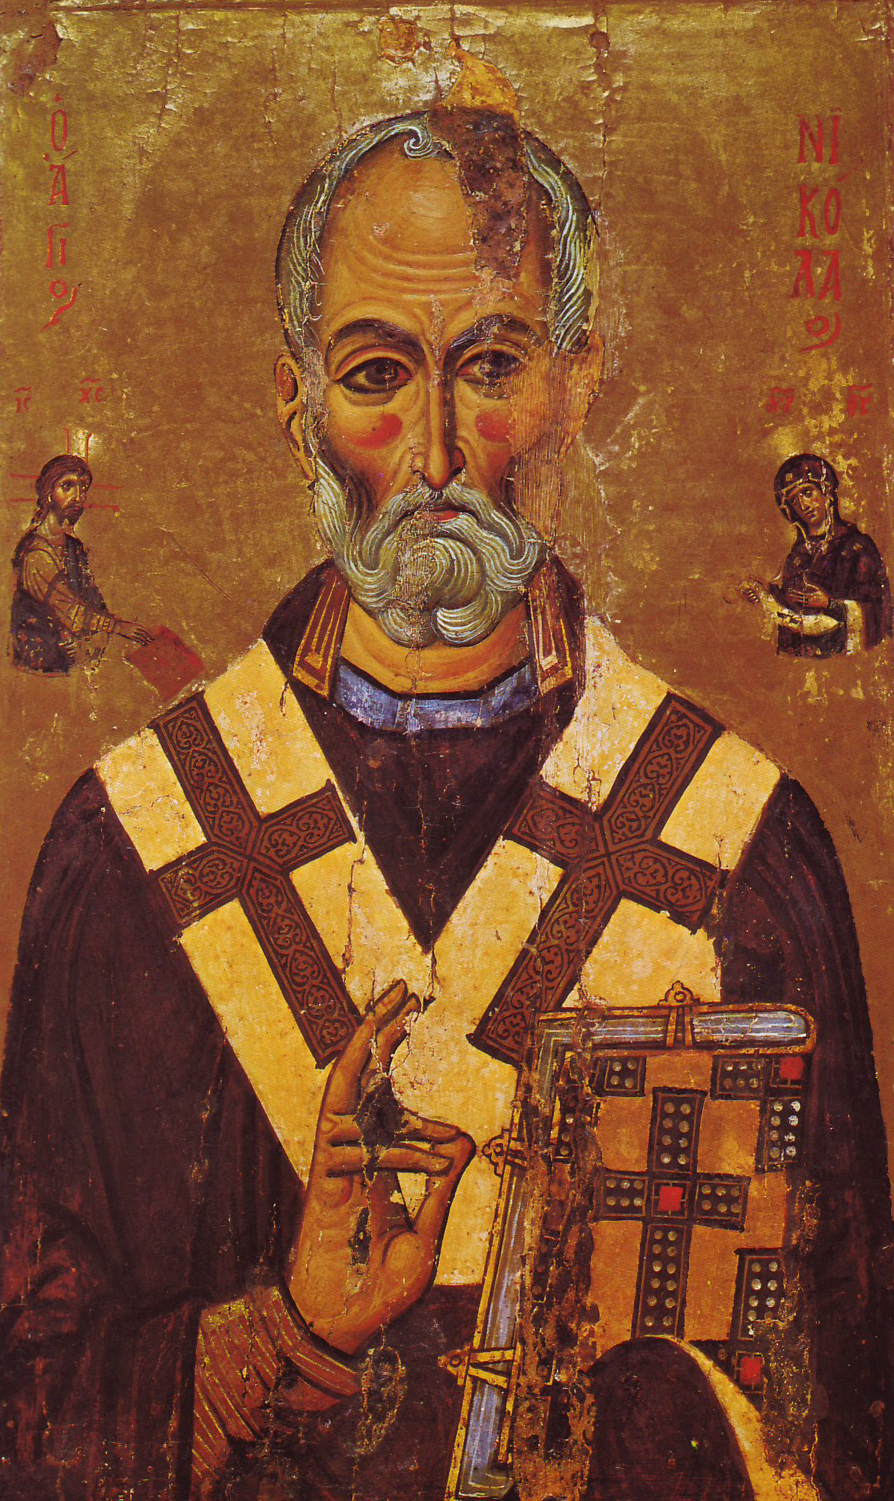 File:St Nicholas Icon Sinai 13th century.jpg - Wikipedia, the free ...: en.wikipedia.org/wiki/file:st_nicholas_icon_sinai_13th_century.jpg